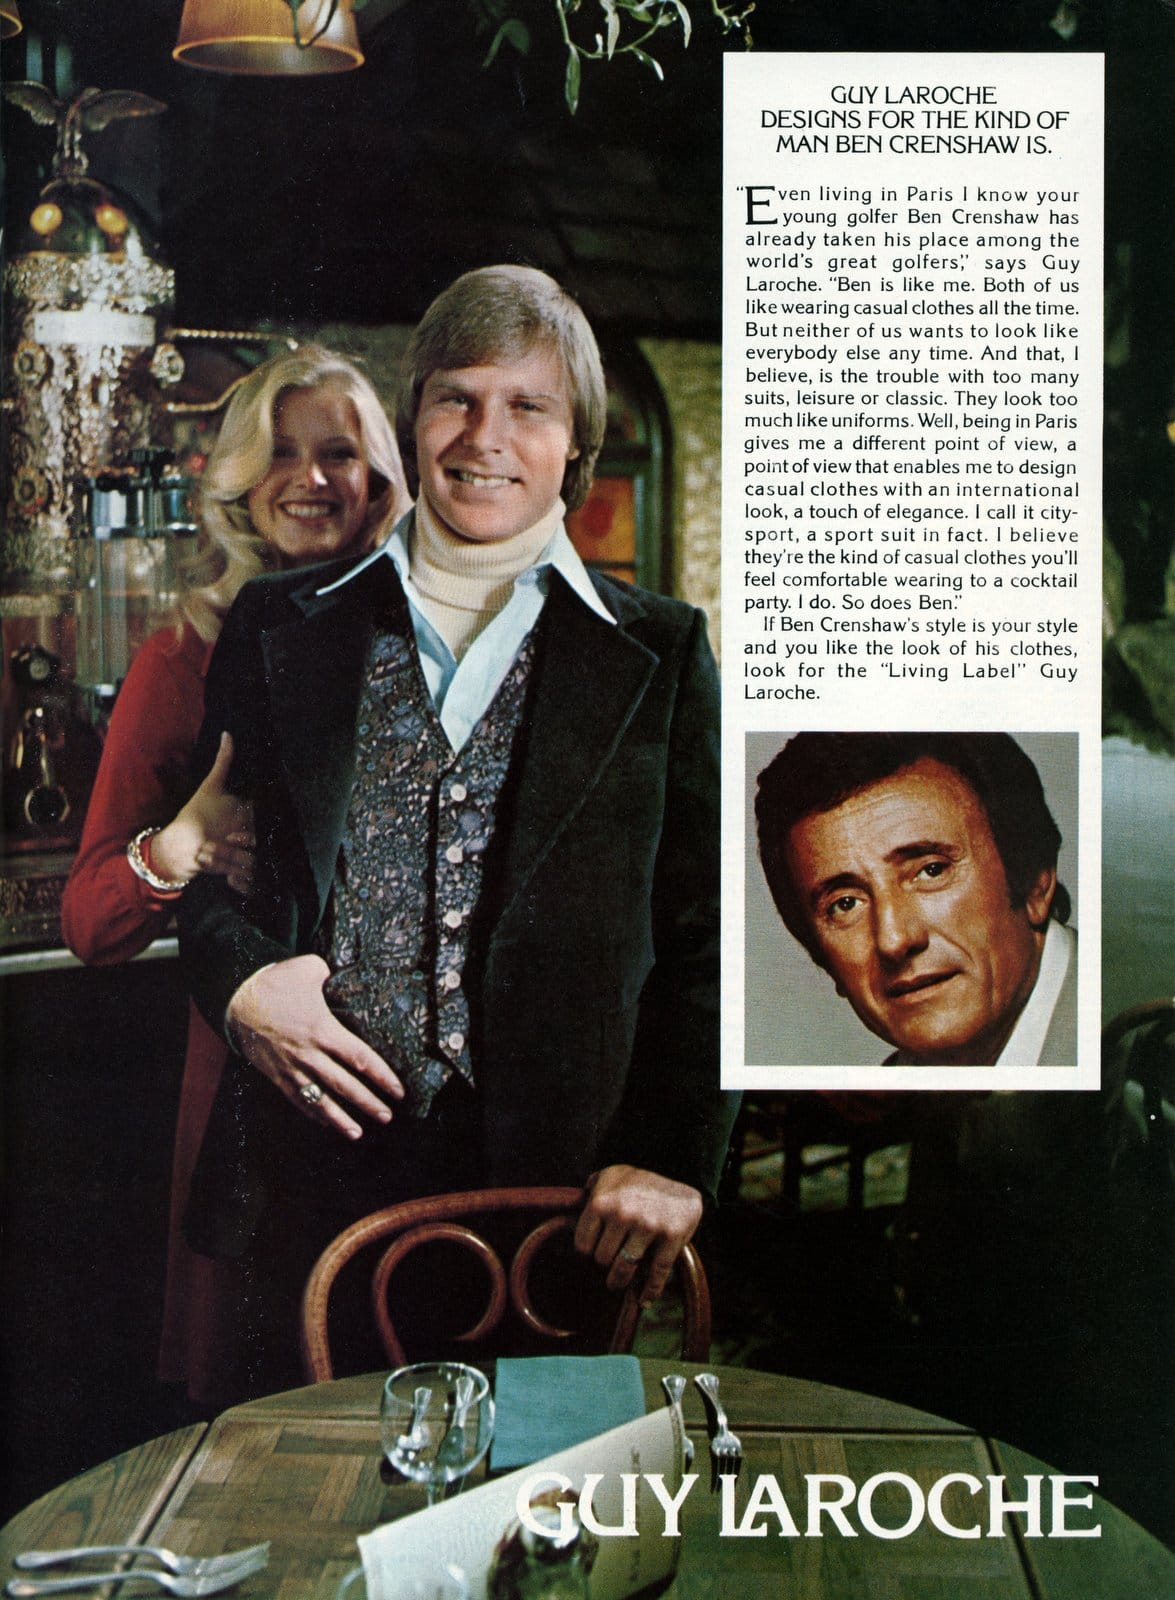 Guy Laroche designs for the kind of man Ben Crenshaw is - Suits for men from 1976